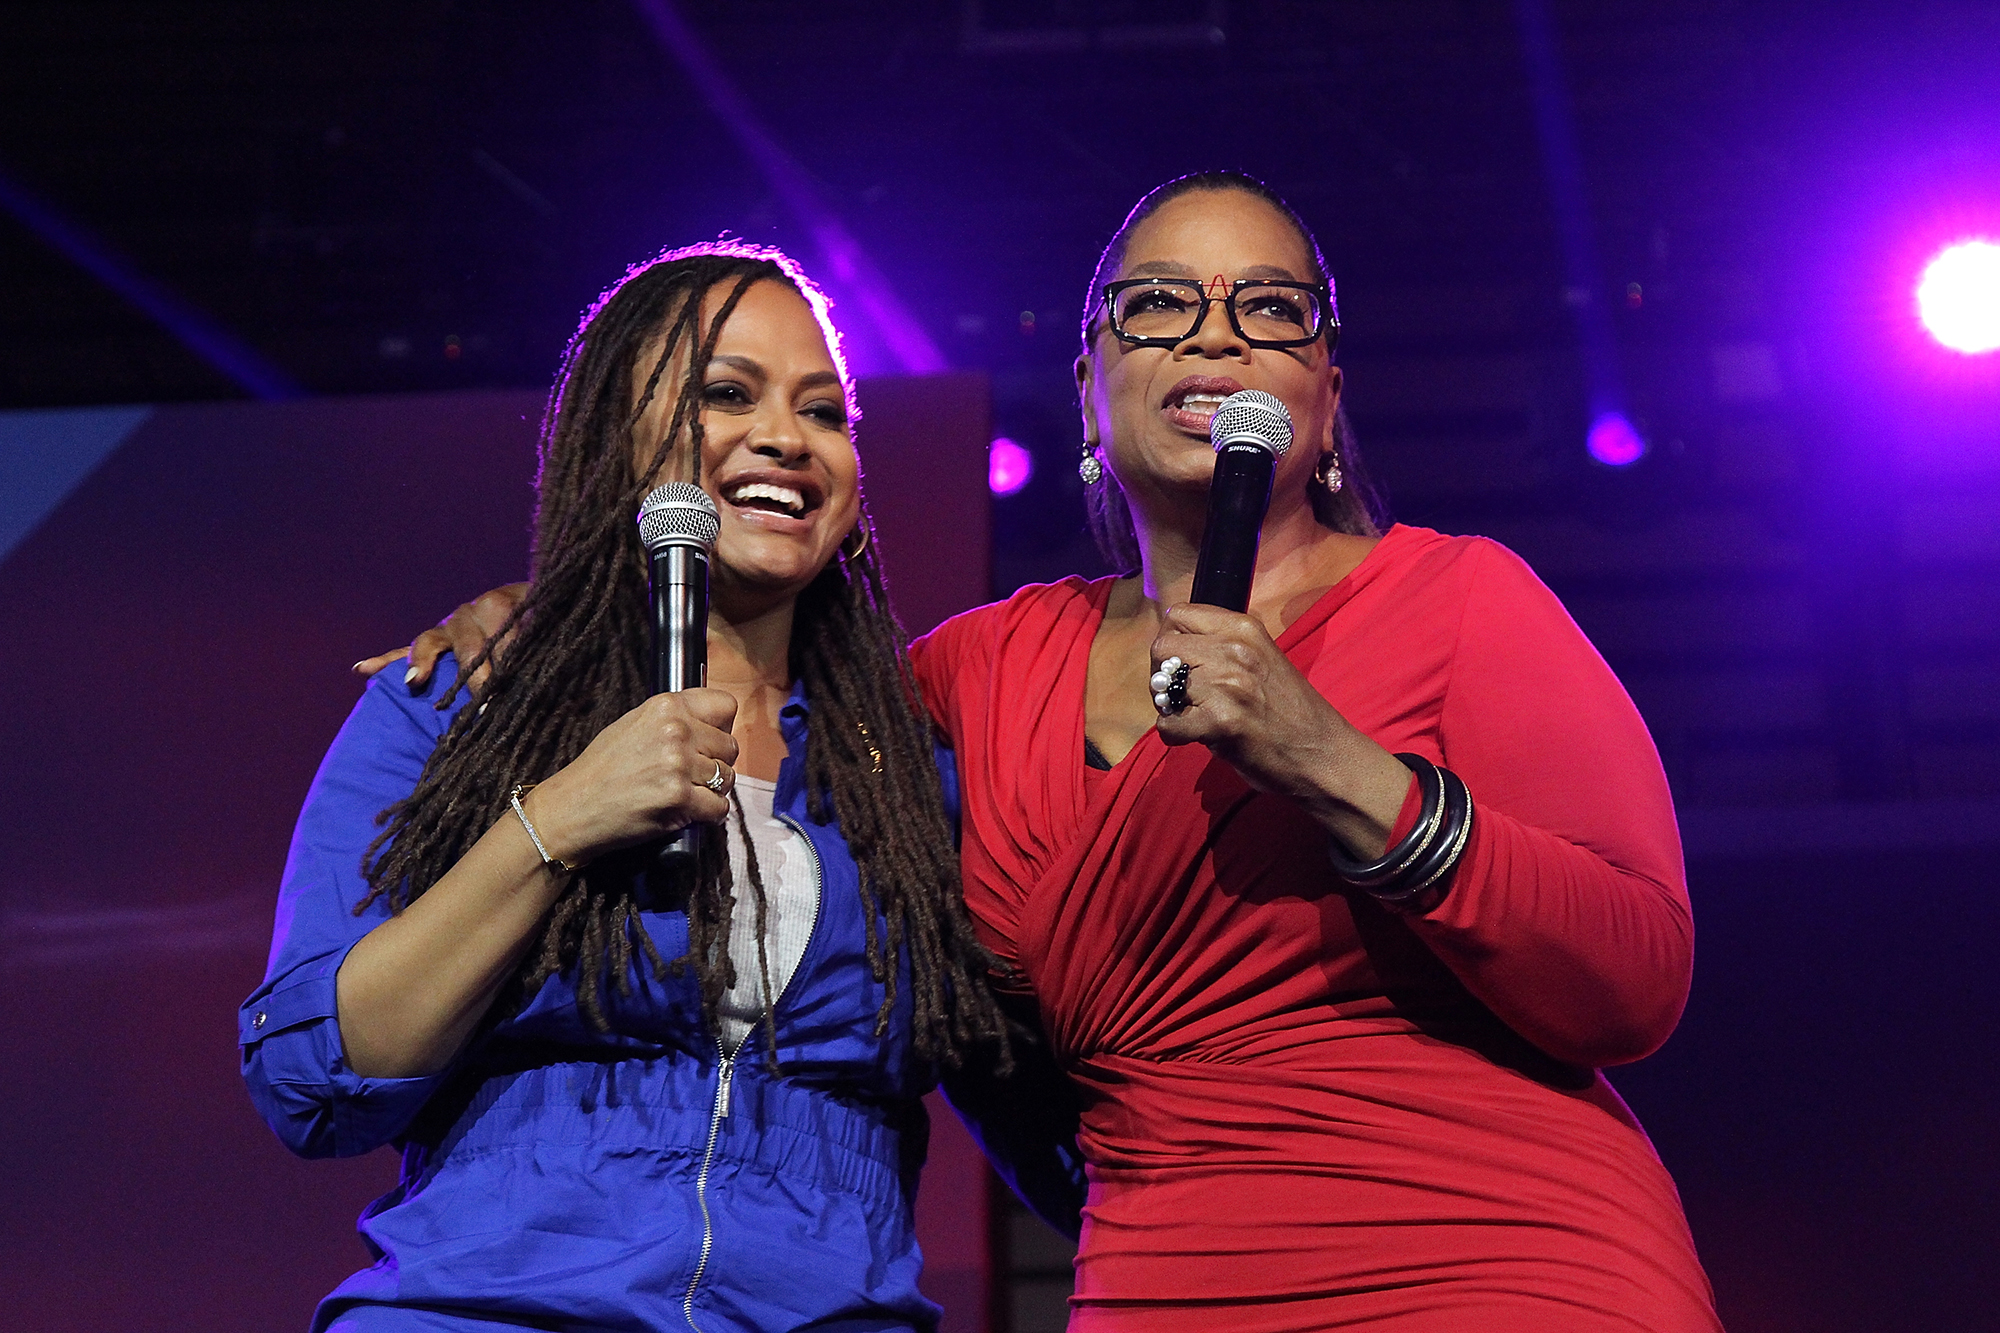 Ava DuVernay and Oprah Winfrey attend the 2016 Essence Festival - Day 2 at Ernest N. Morial Convention Center on July 1, 2016 in New Orleans, Louisiana.  (Photo by Bennett Raglin/WireImage)